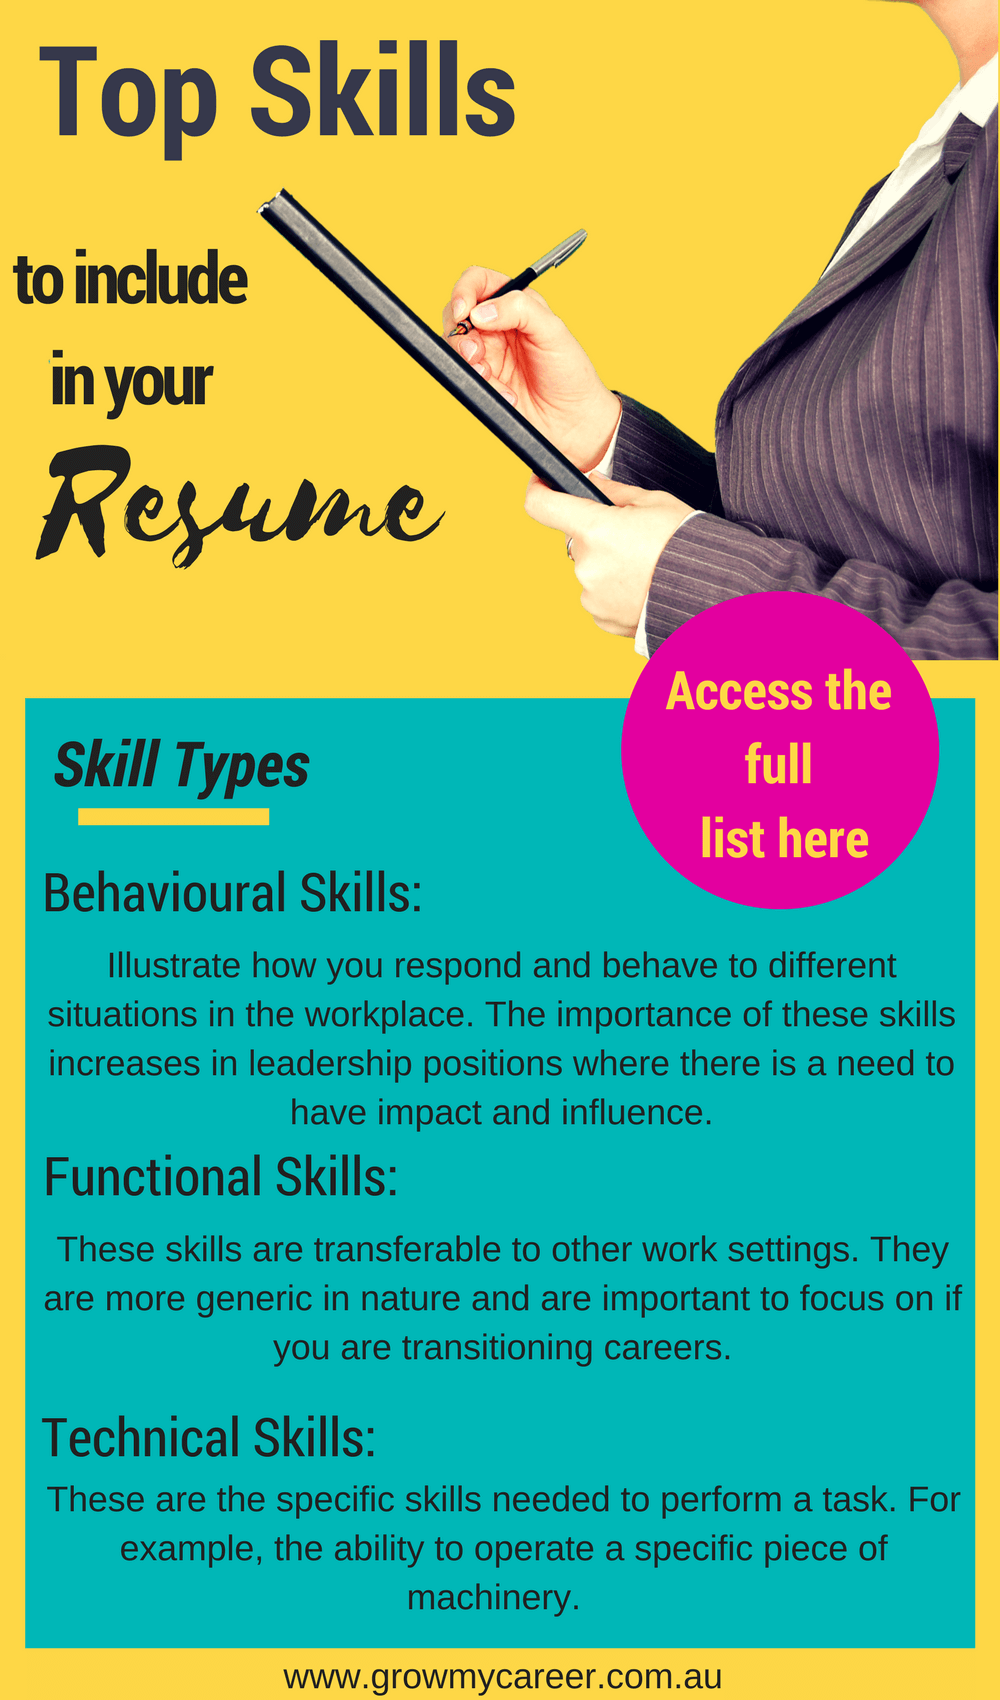 Strengthen Your Resume With This List Of Behavioural, Functional, And Technical  Skills. Incorporate The Relevant Skills For The Job You Are Applying For.